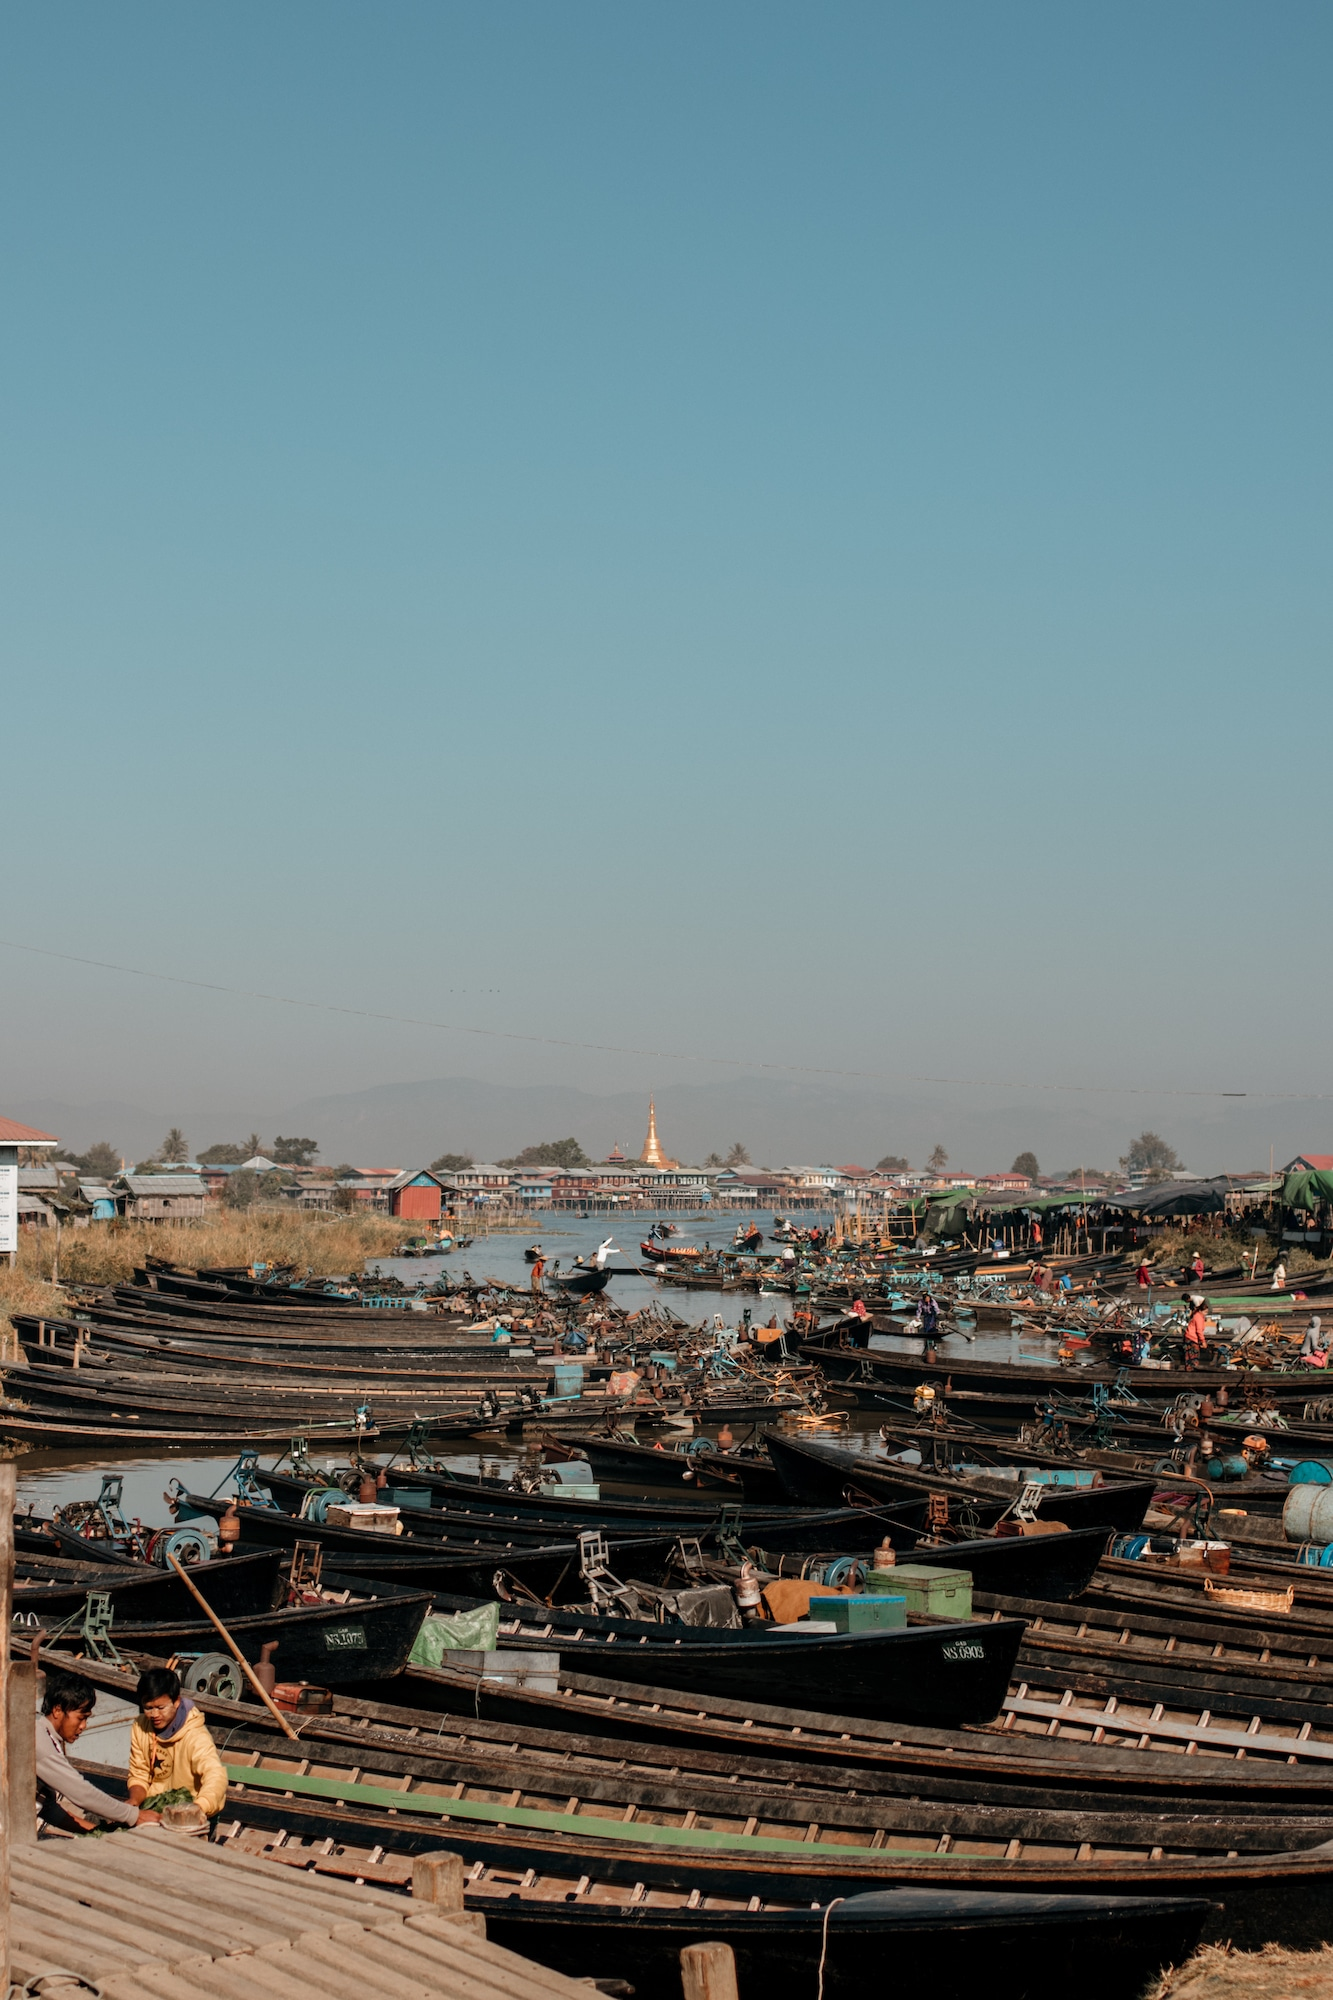 inle lake markt boote